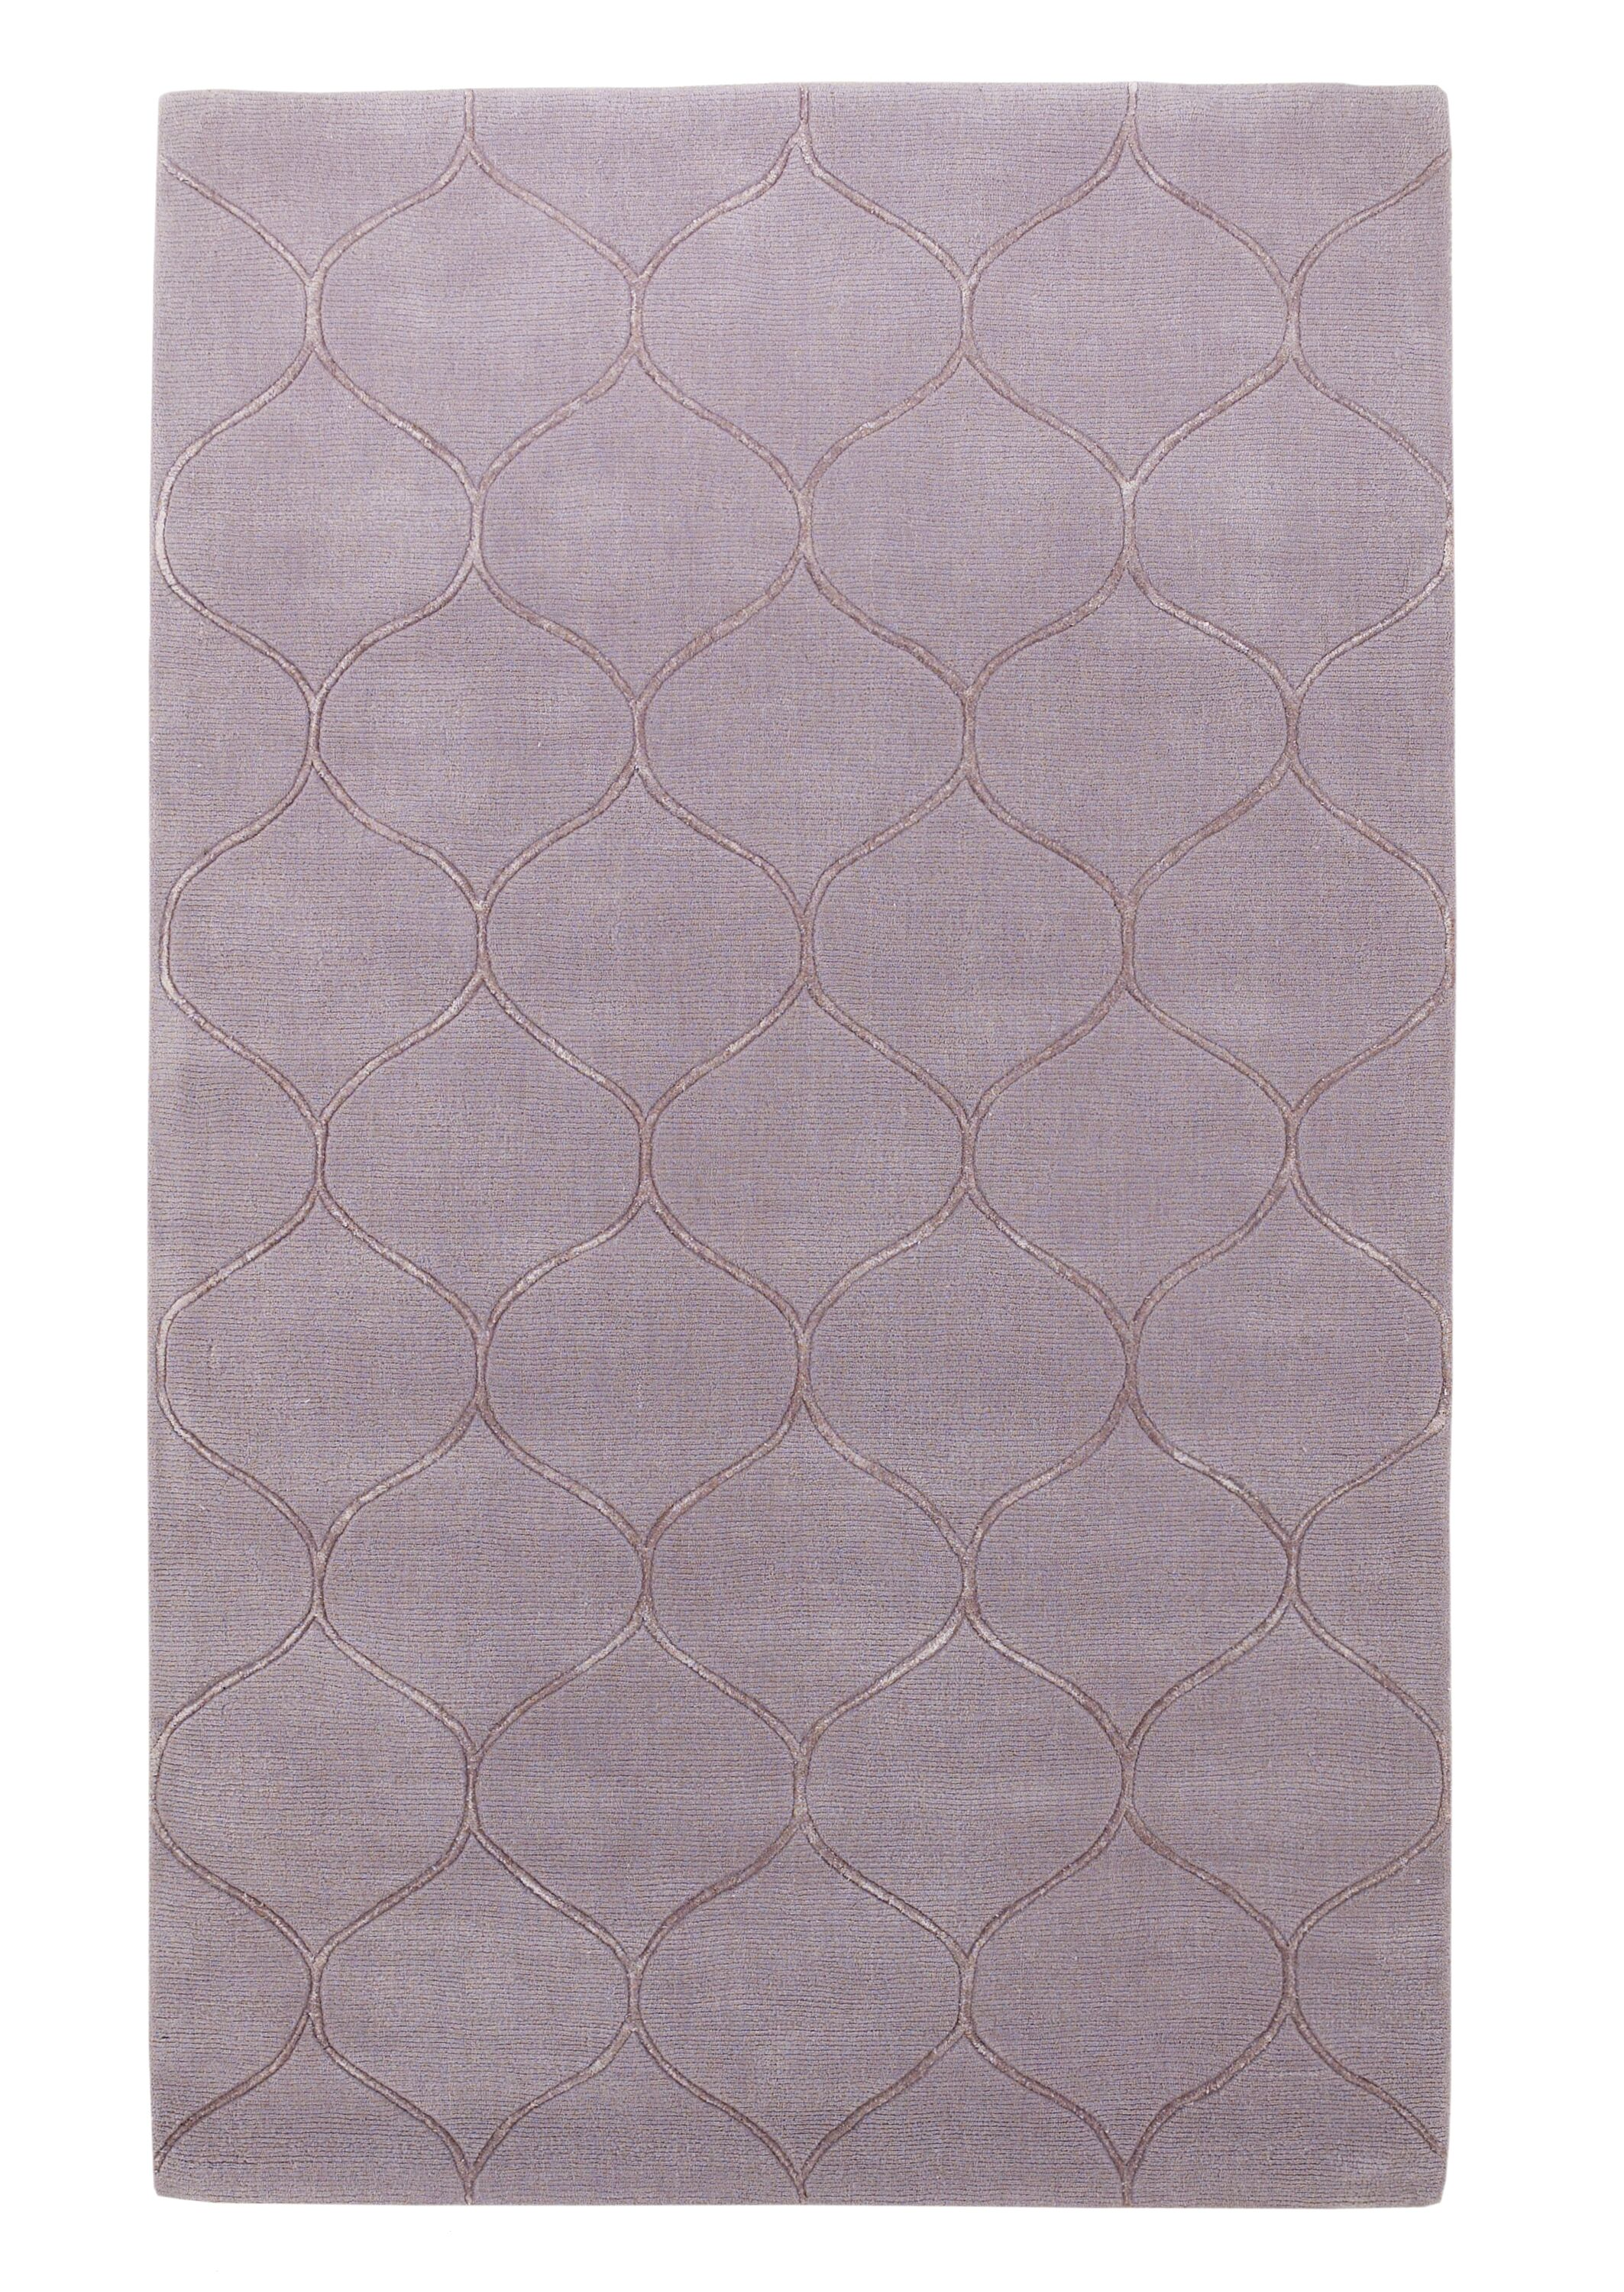 Bog Water Harmony Lavender Area Rug Rug Size: Rectangle 8' x 10'